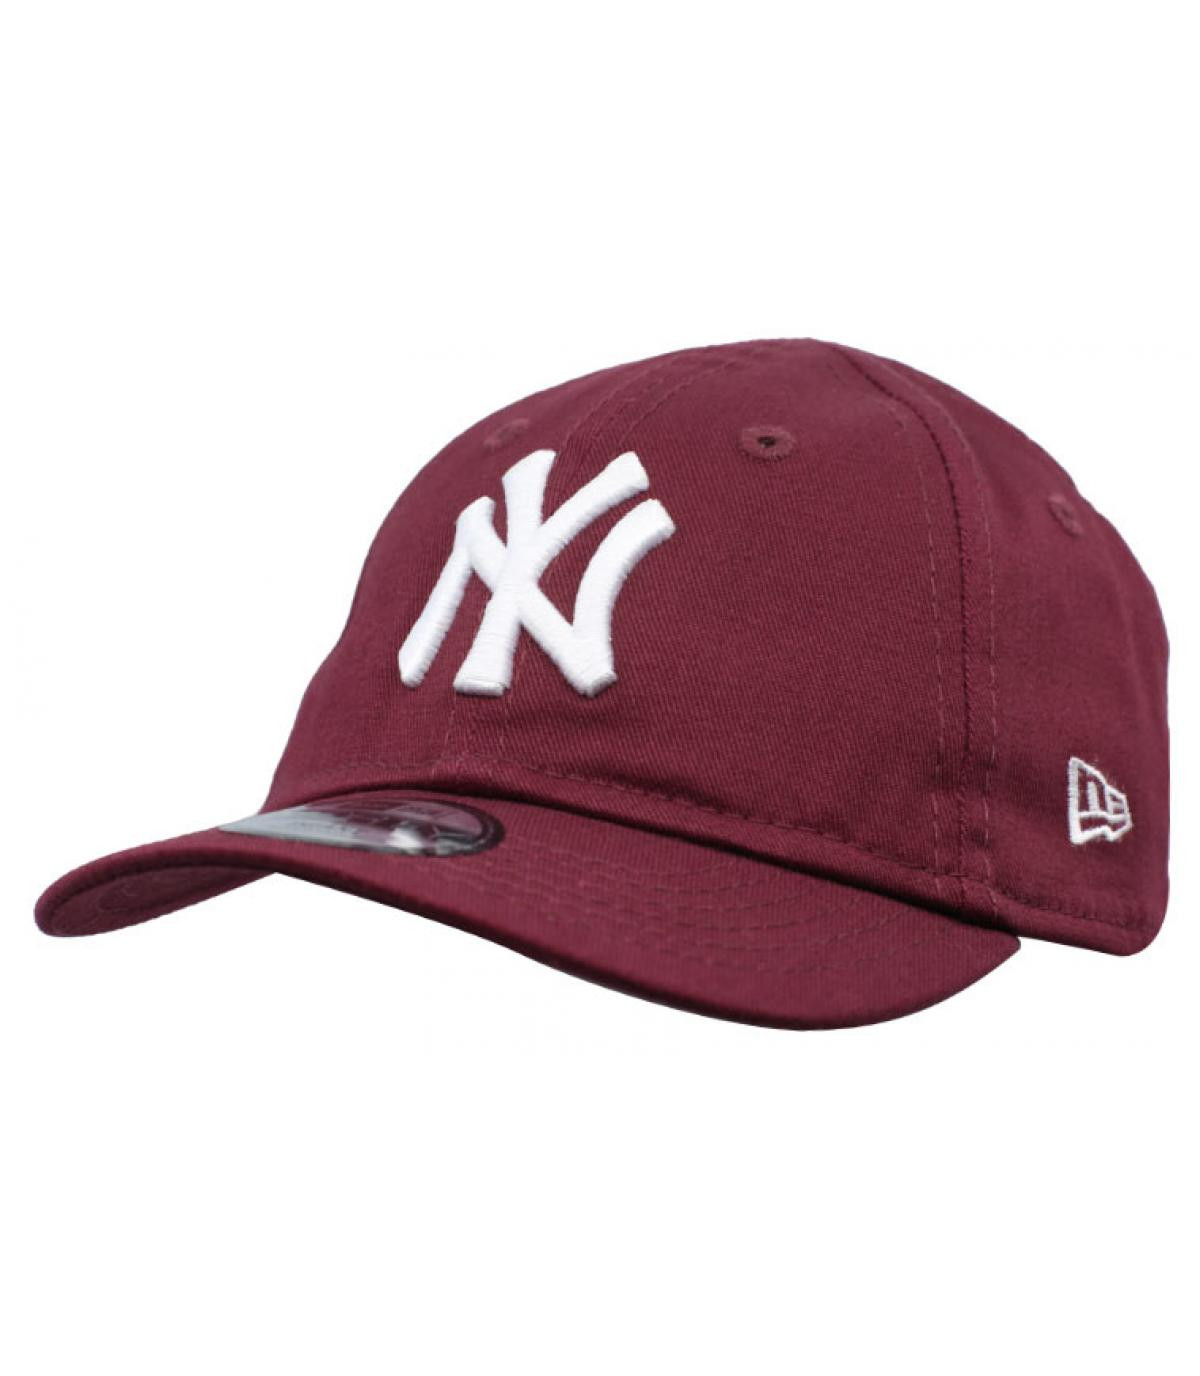 Détails Casquette Baby League Ess NY 9Forty maroon - image 2